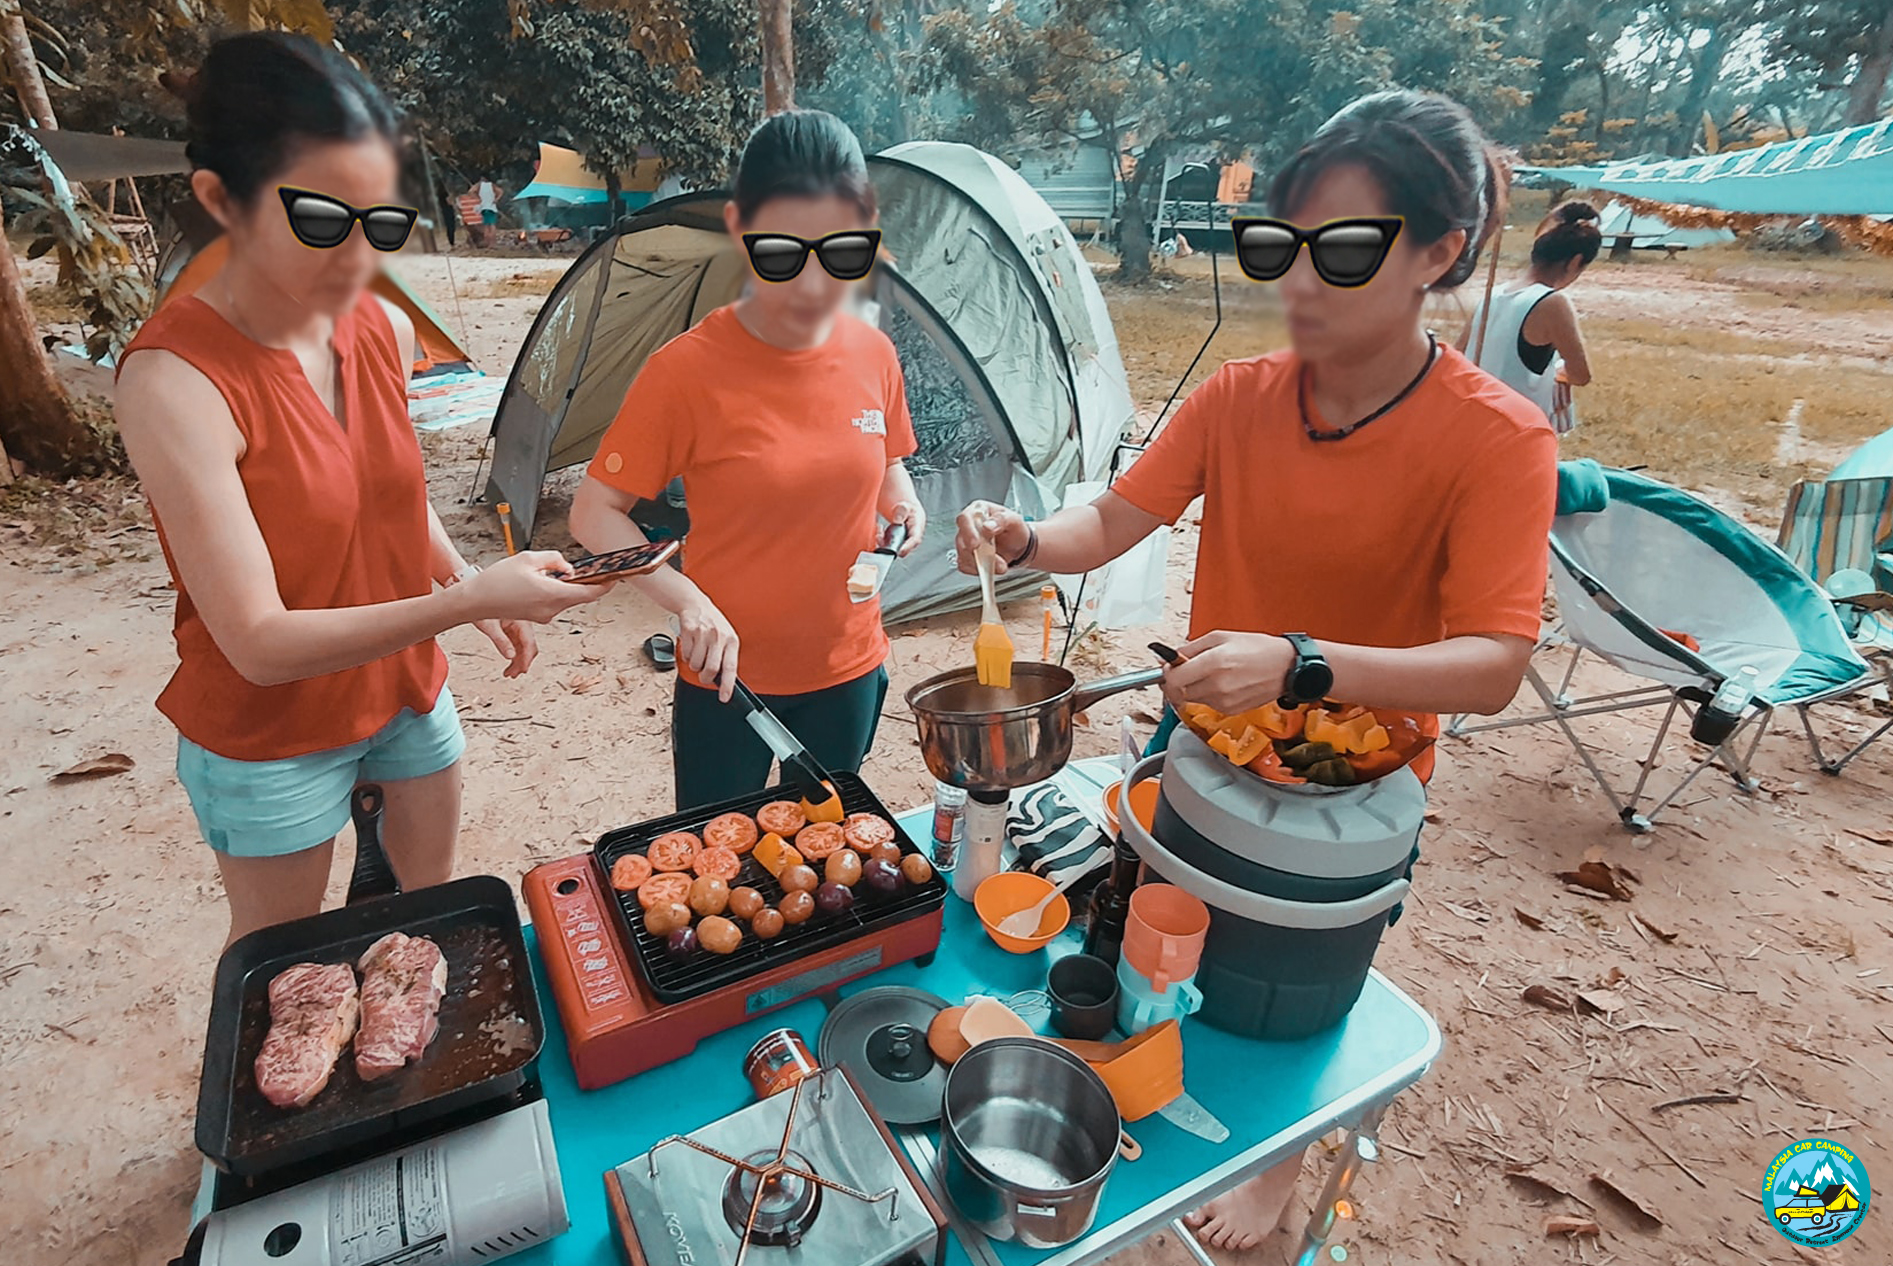 christmas_car_camping_at_hammock_by_the_river_campsite_malaysia_car_camping_private_event_organizer -2